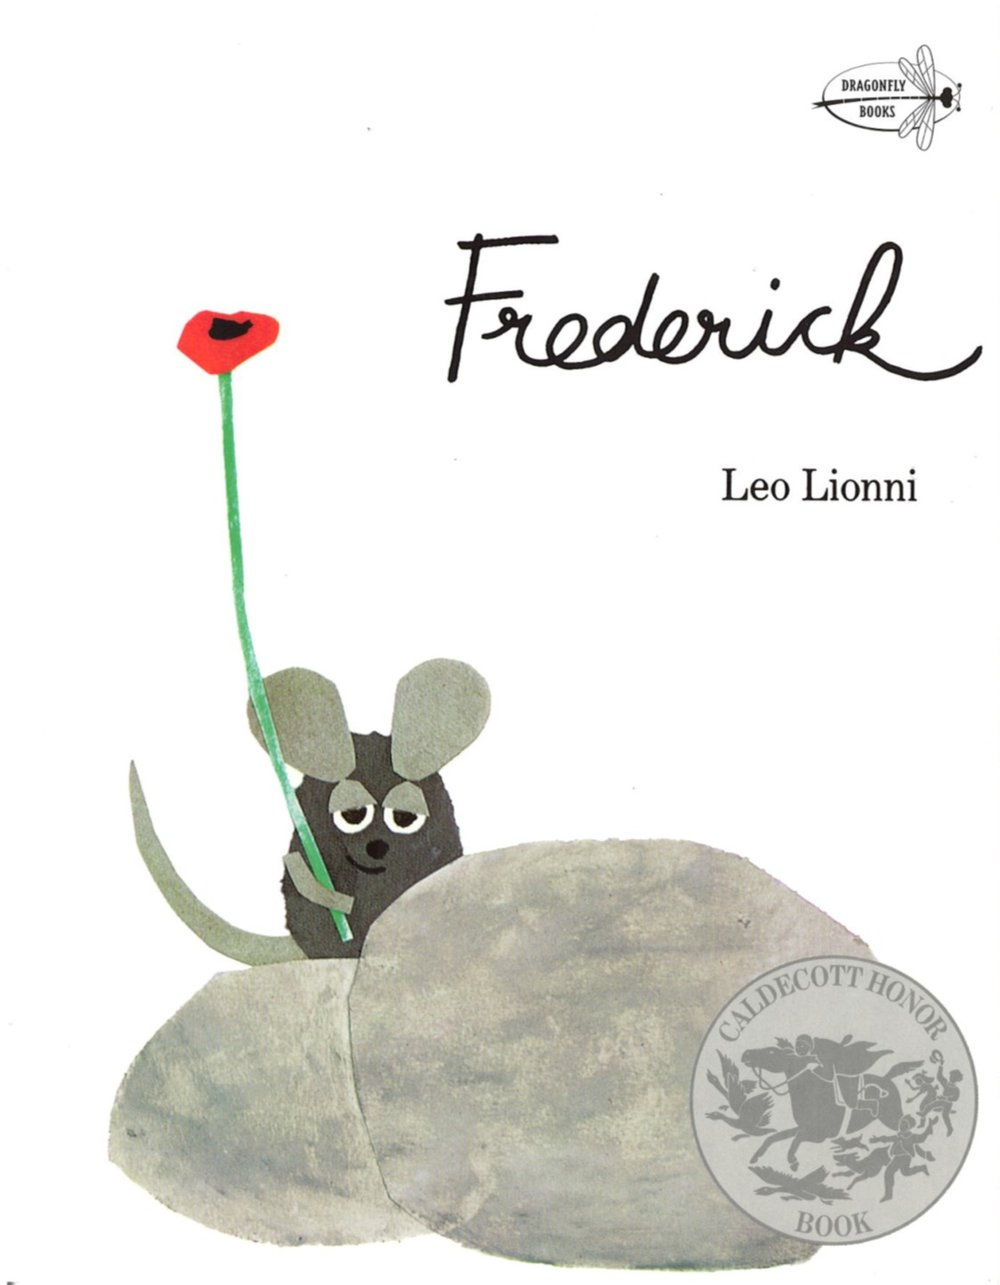 Frederick  - by Leo LionniThis adorable book tells of a mouse who prepares for the winter by soaking up sunshine and bright colors to share with his family when it's dark and cold.